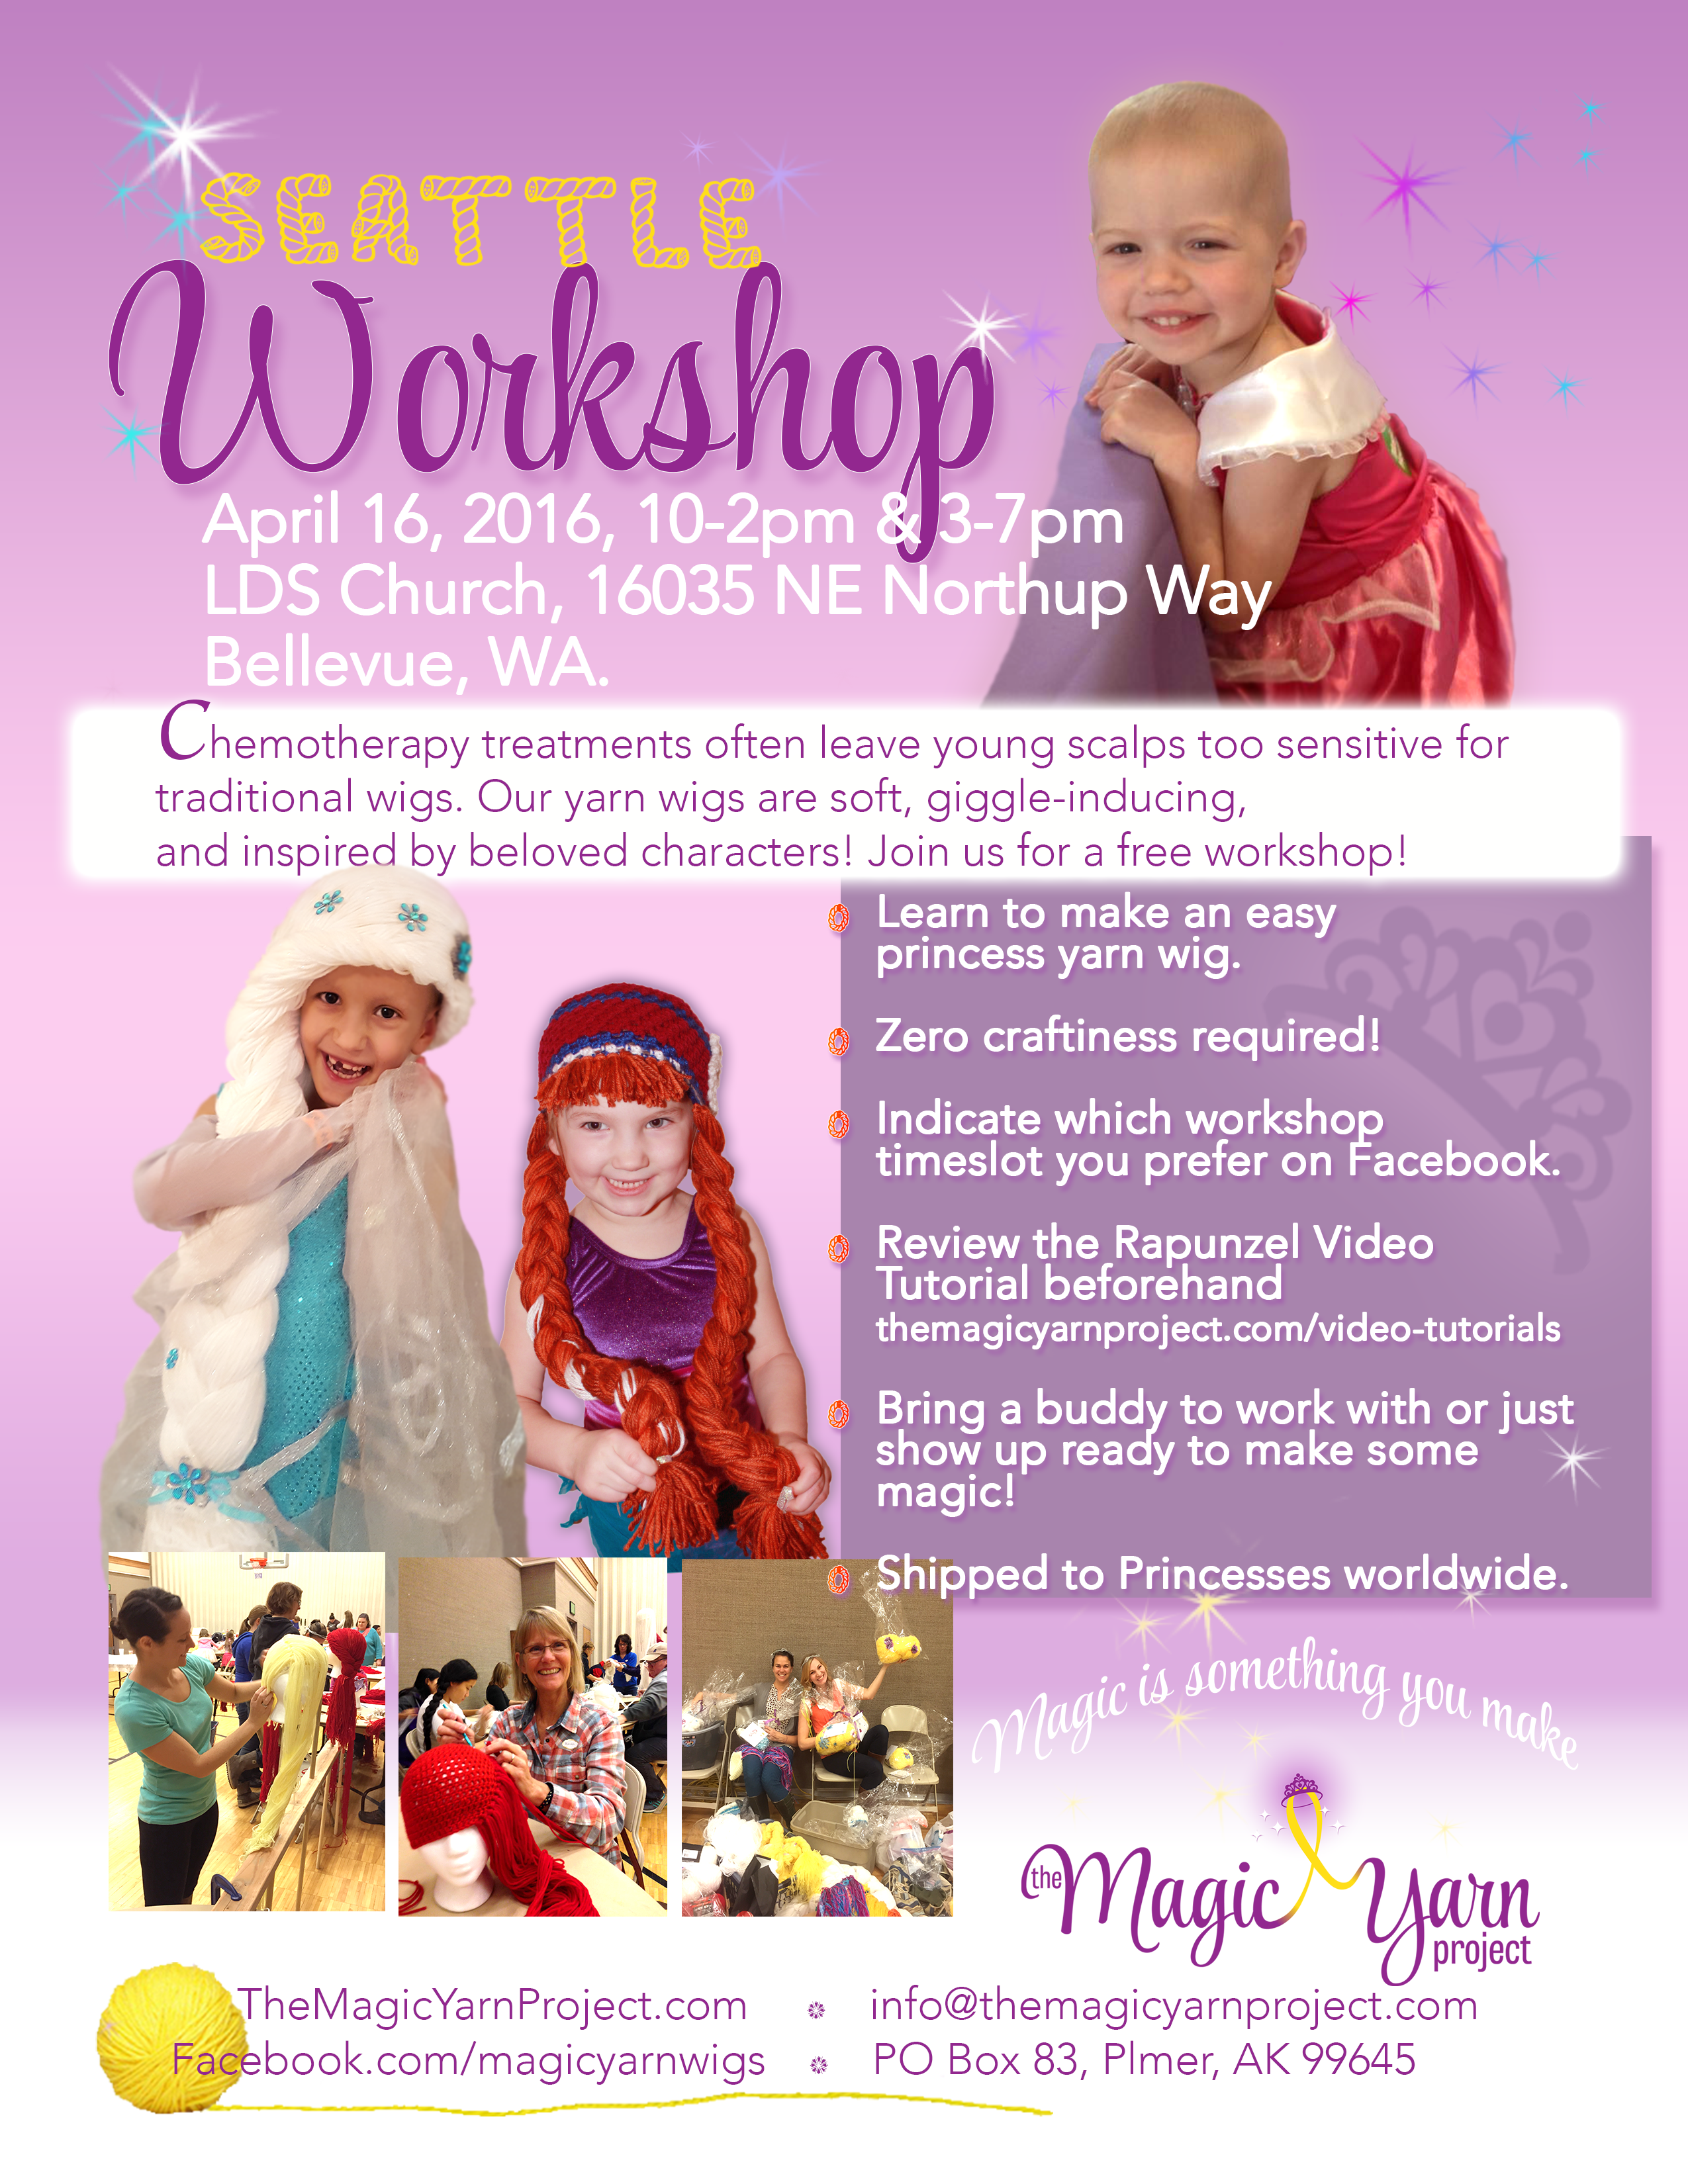 Seattle Workshop | The Magic Yarn Project